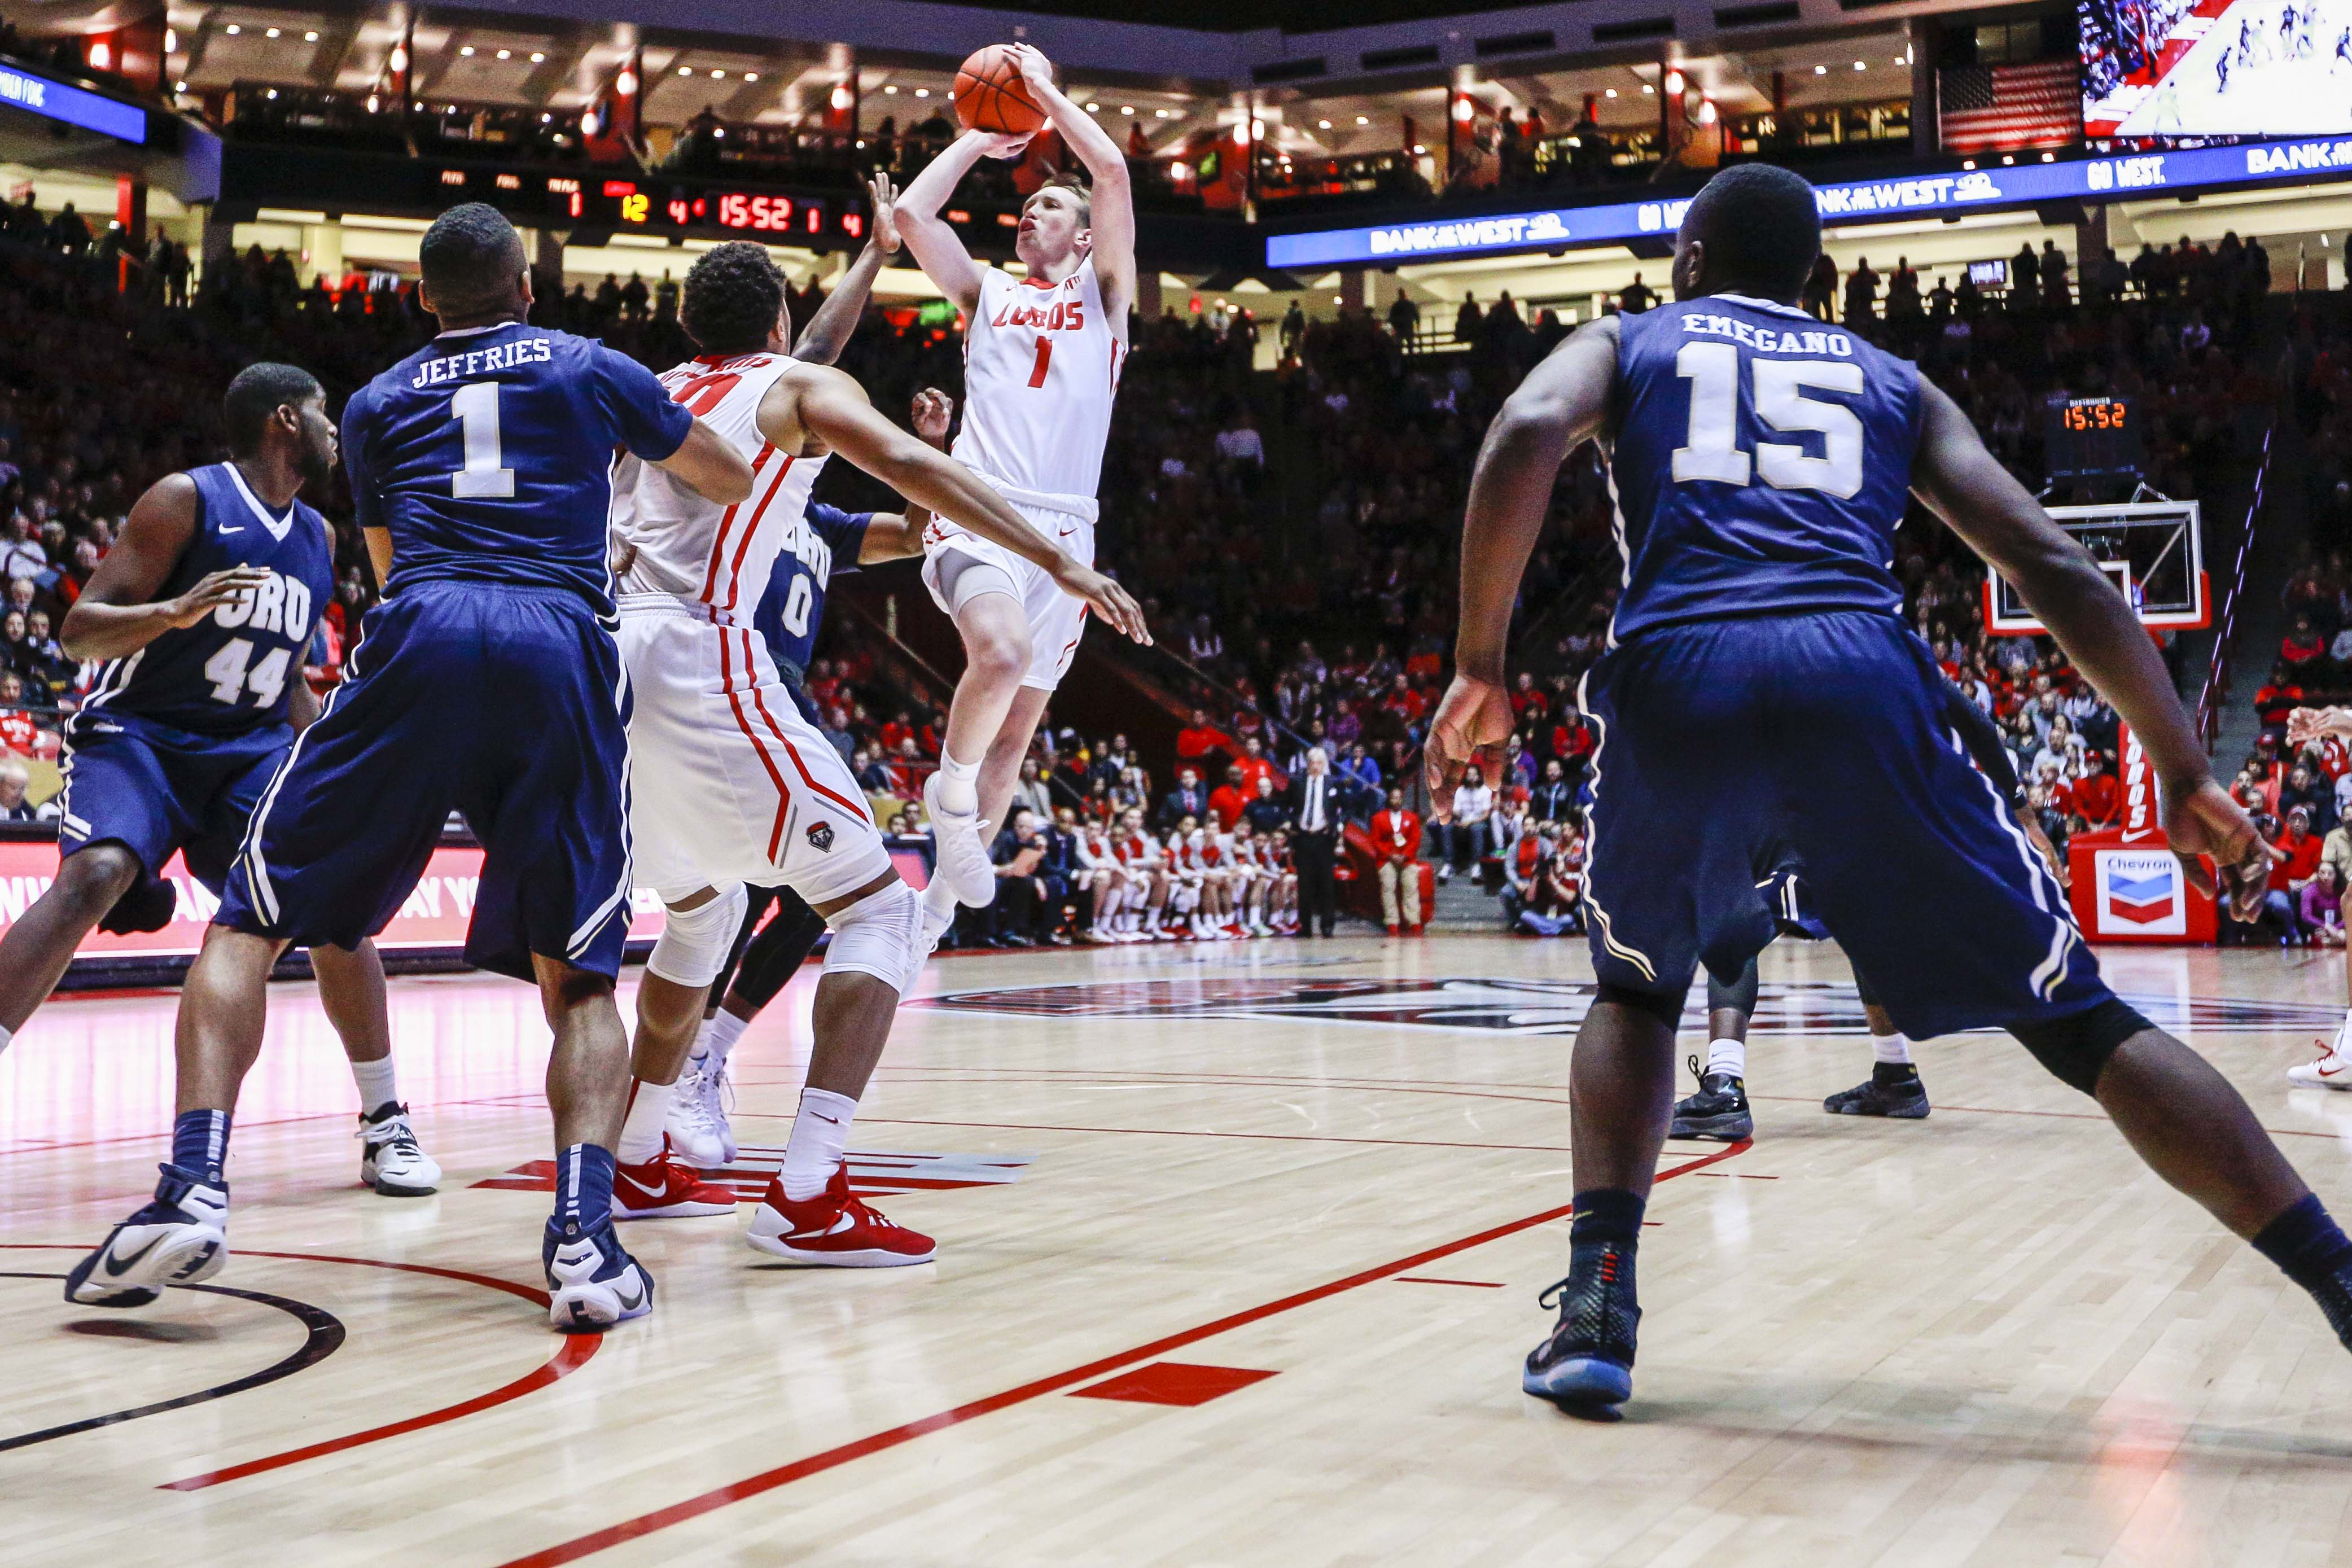 New Mexico's Cullen Neal (1) shoots during the first half of an NCAA college basketball game against Oral Roberts, Tuesday, Dec. 1, 2015, in Albuquerque, N.M. (AP Photo/Juan Labreche)